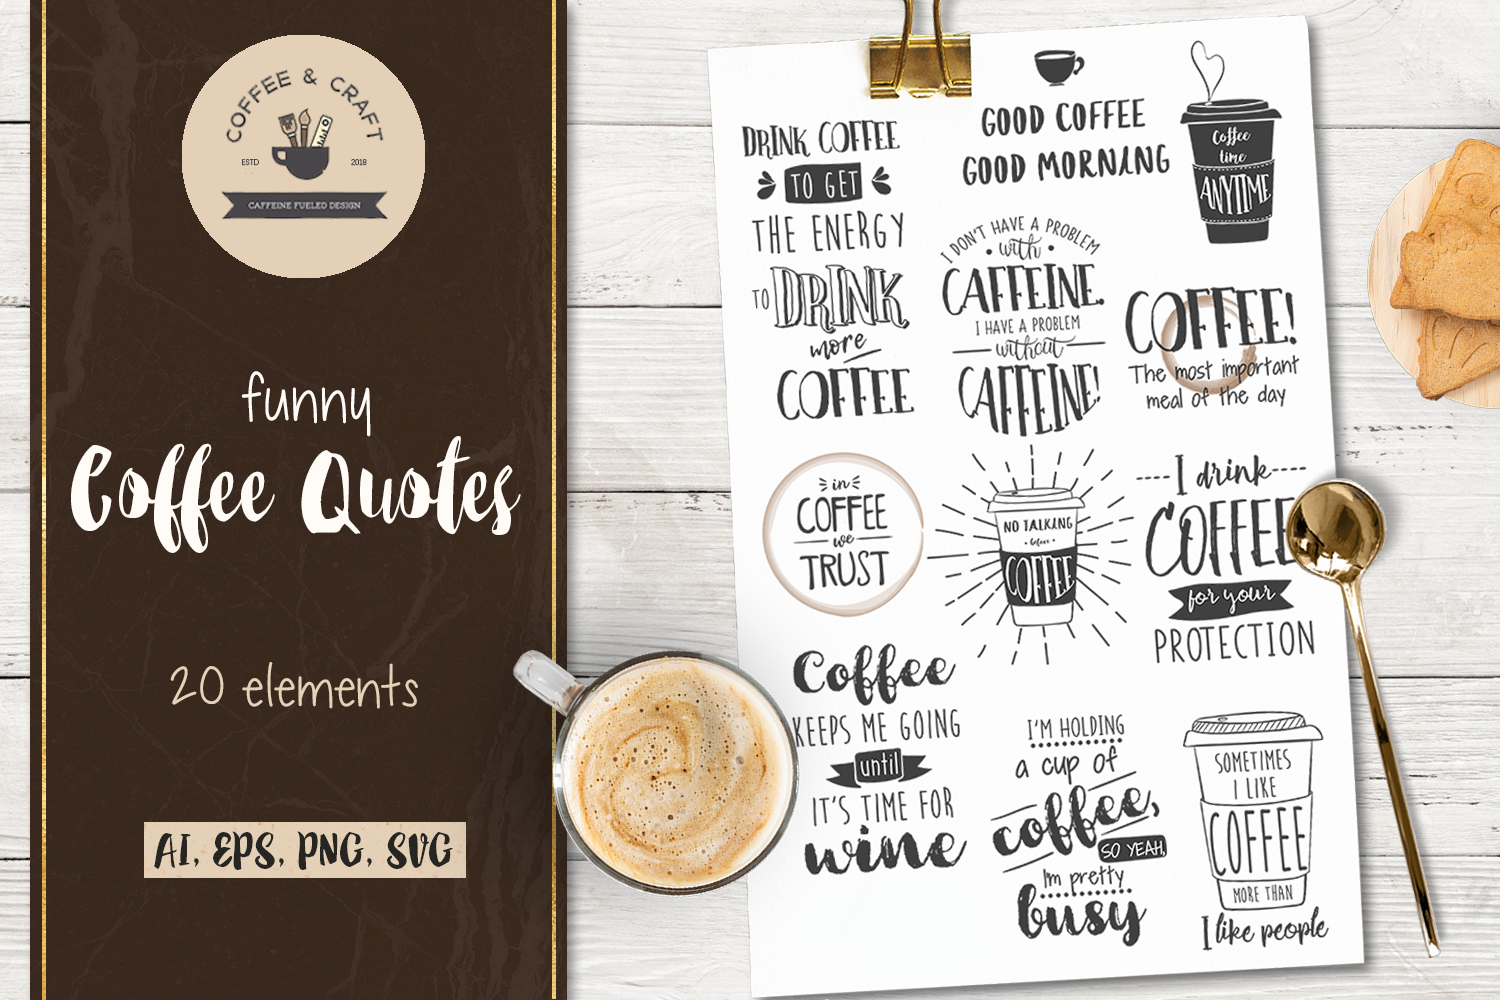 Funny Coffee Quotes example image 1